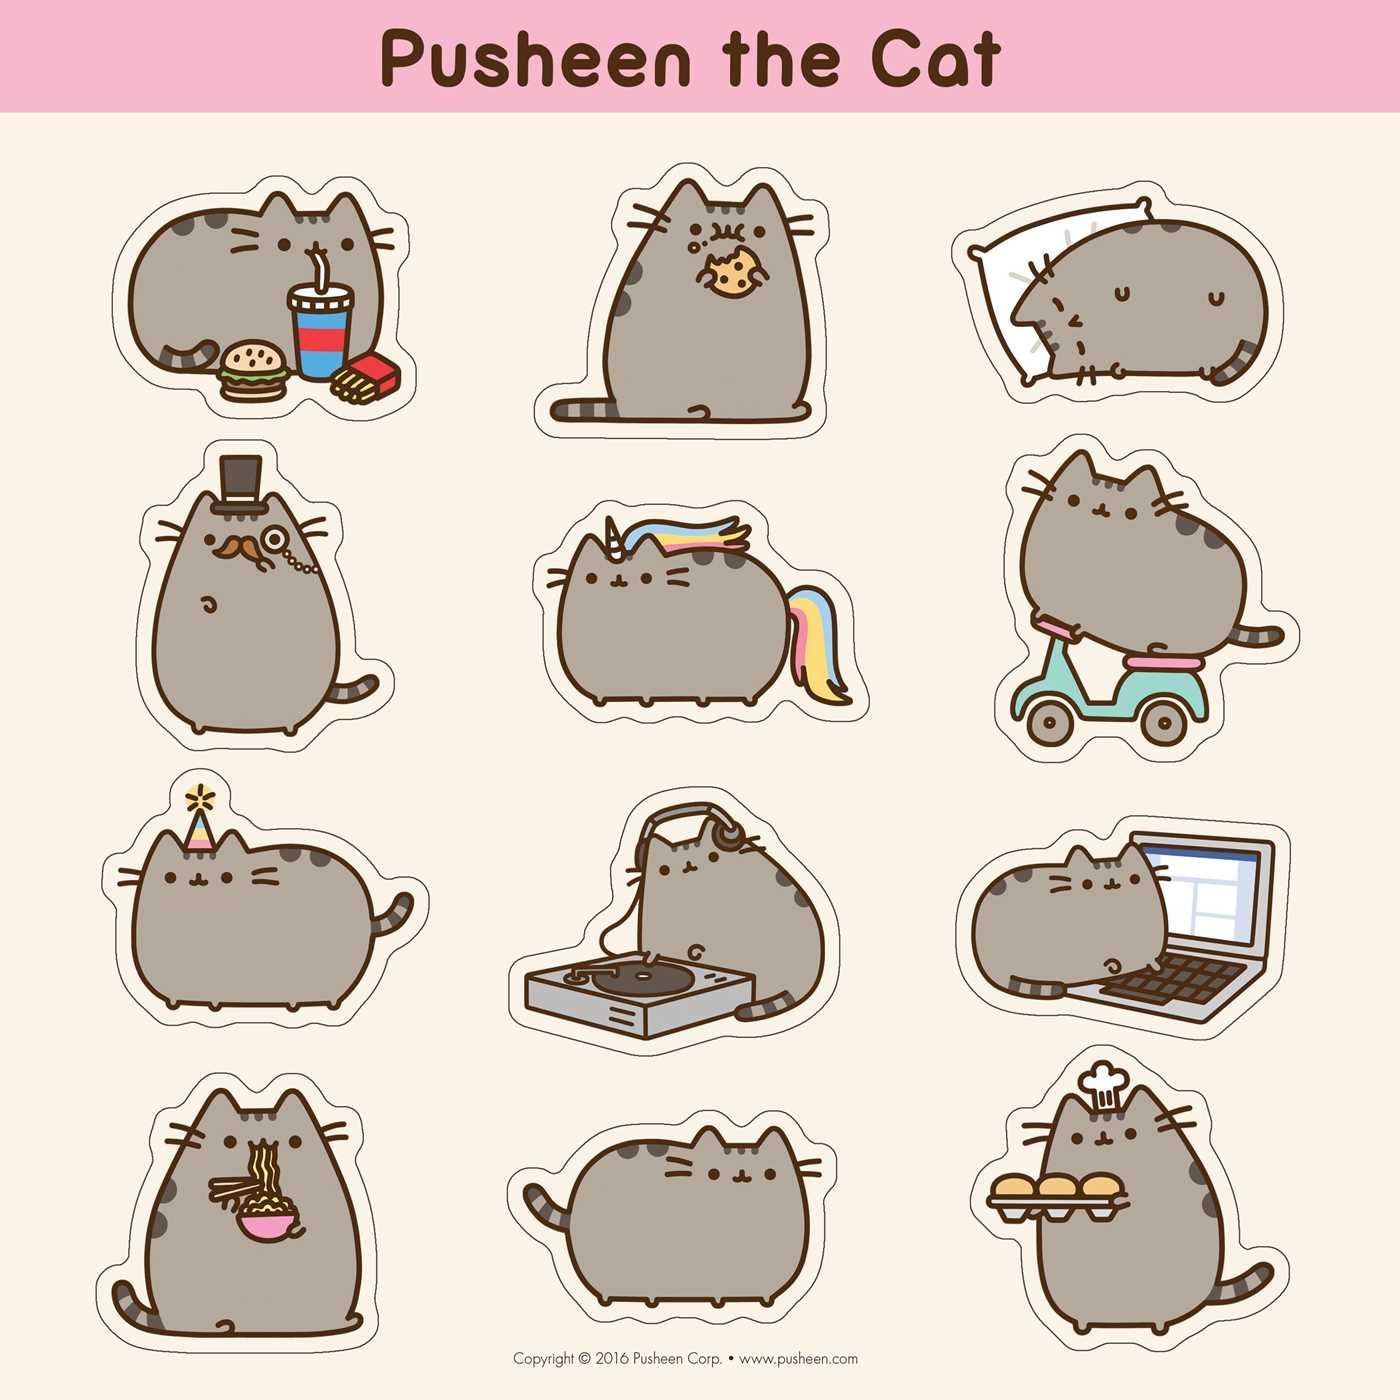 Charming Pusheen The Cat 2017 Wall Calendar: Claire Belton: 0050837355569:  Amazon.com: Books